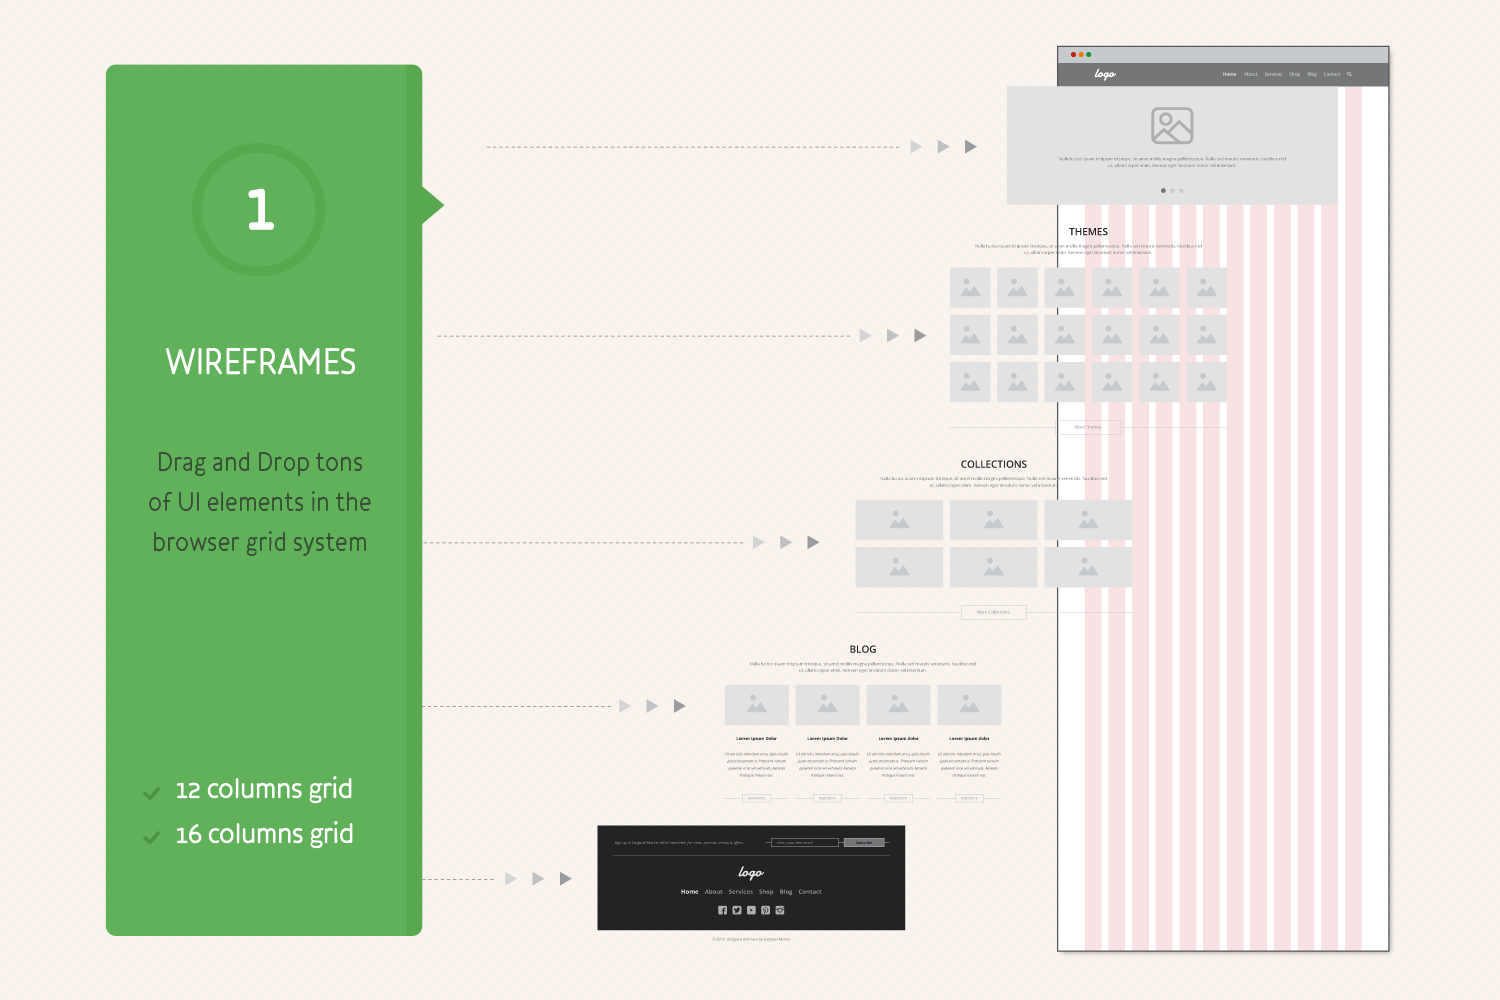 wireframe-and-sitemap-creator-browser-grid-system